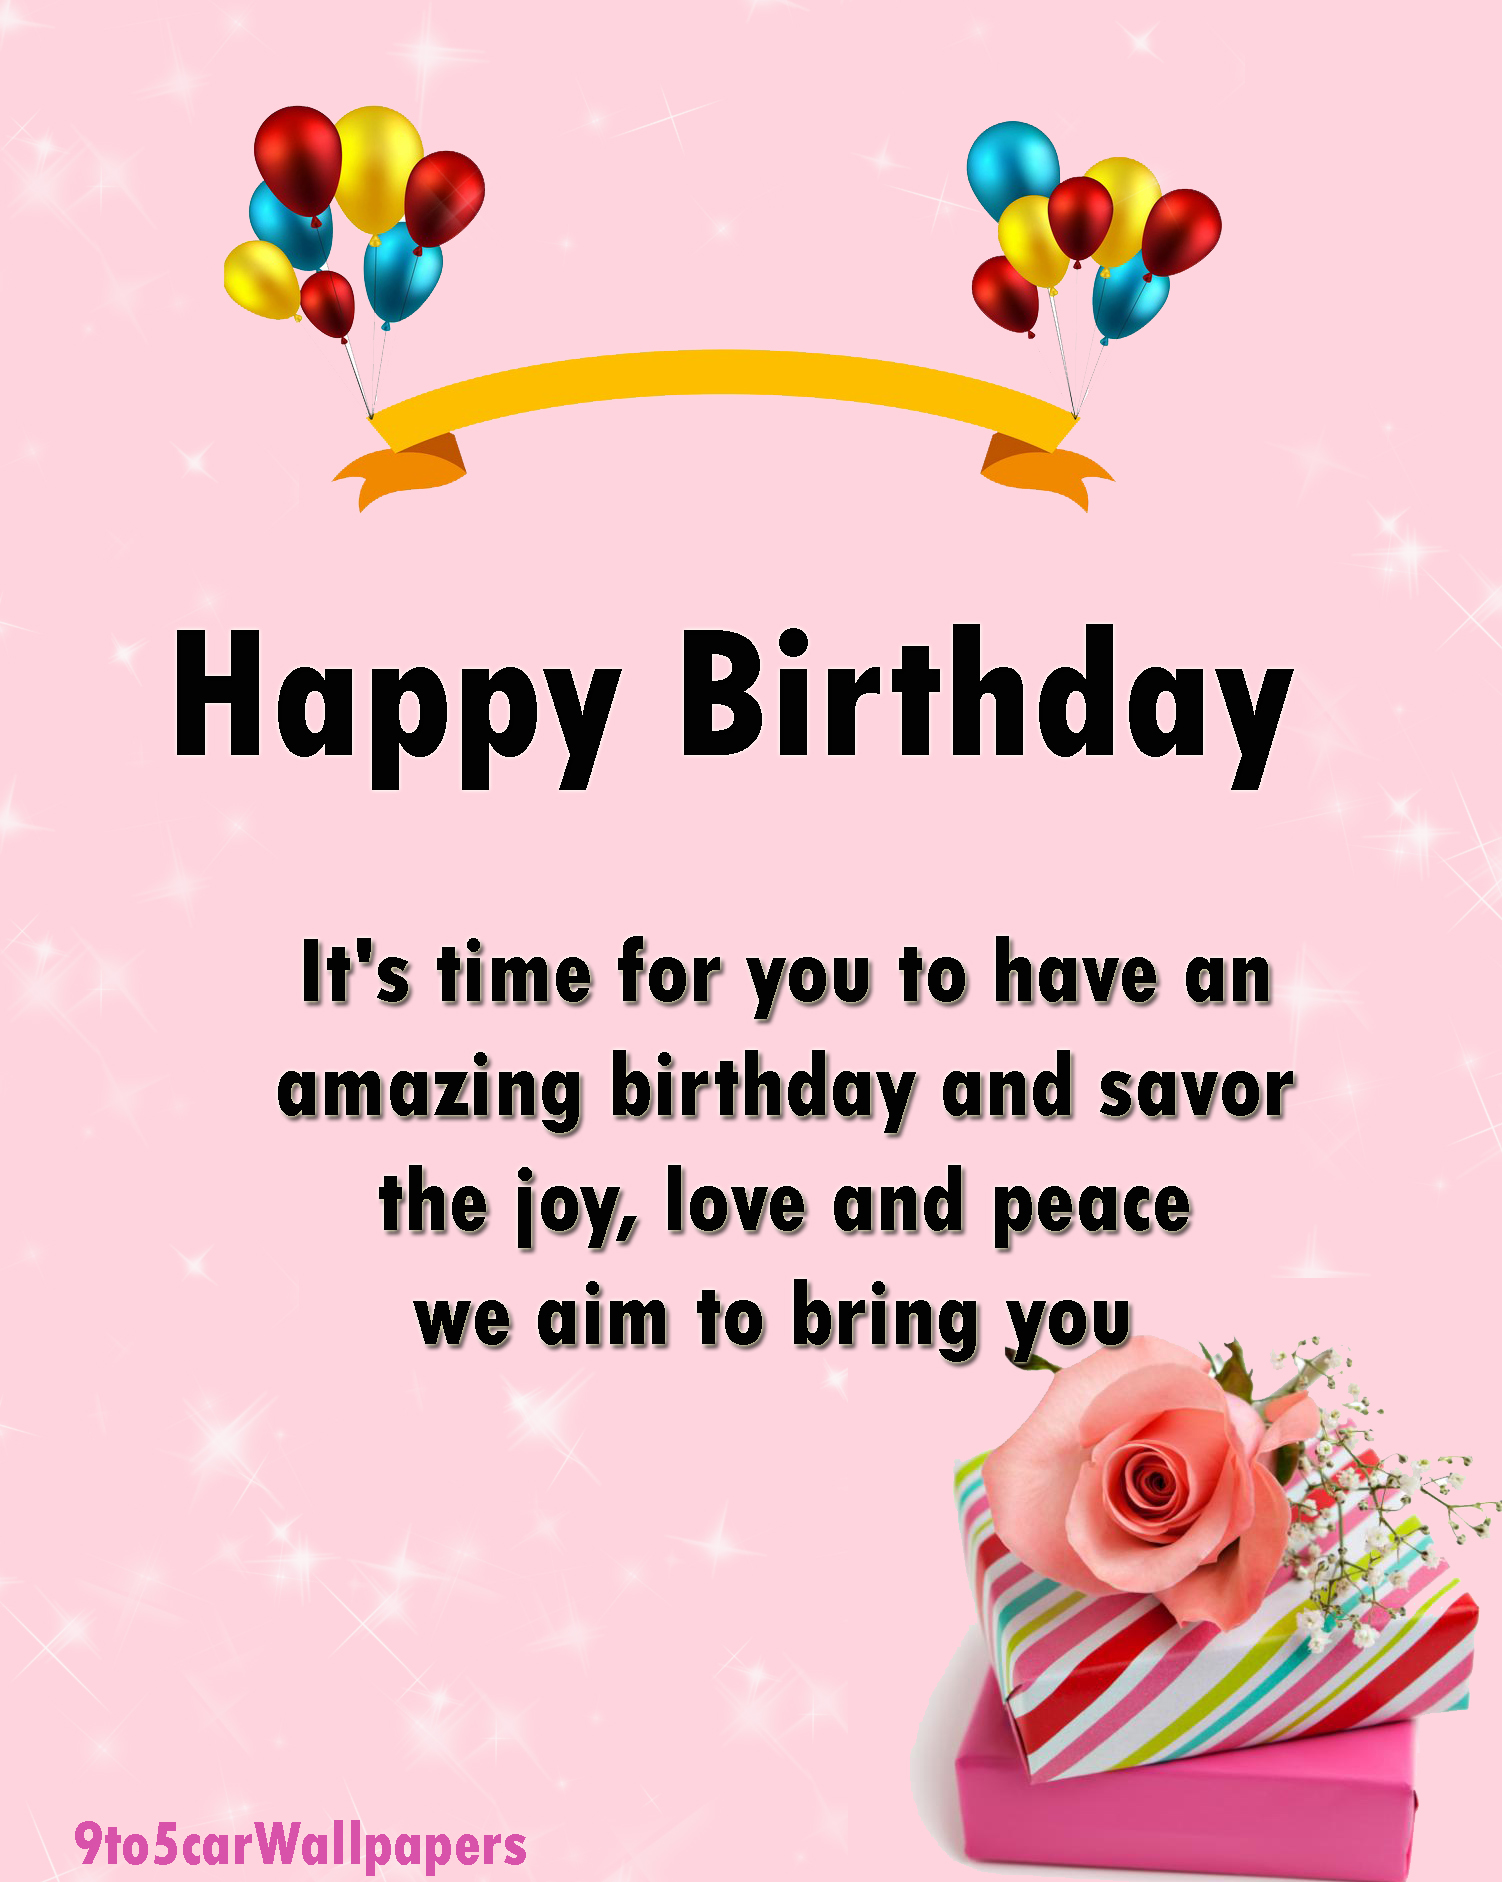 Colourful-happy-birthday-image-free-download